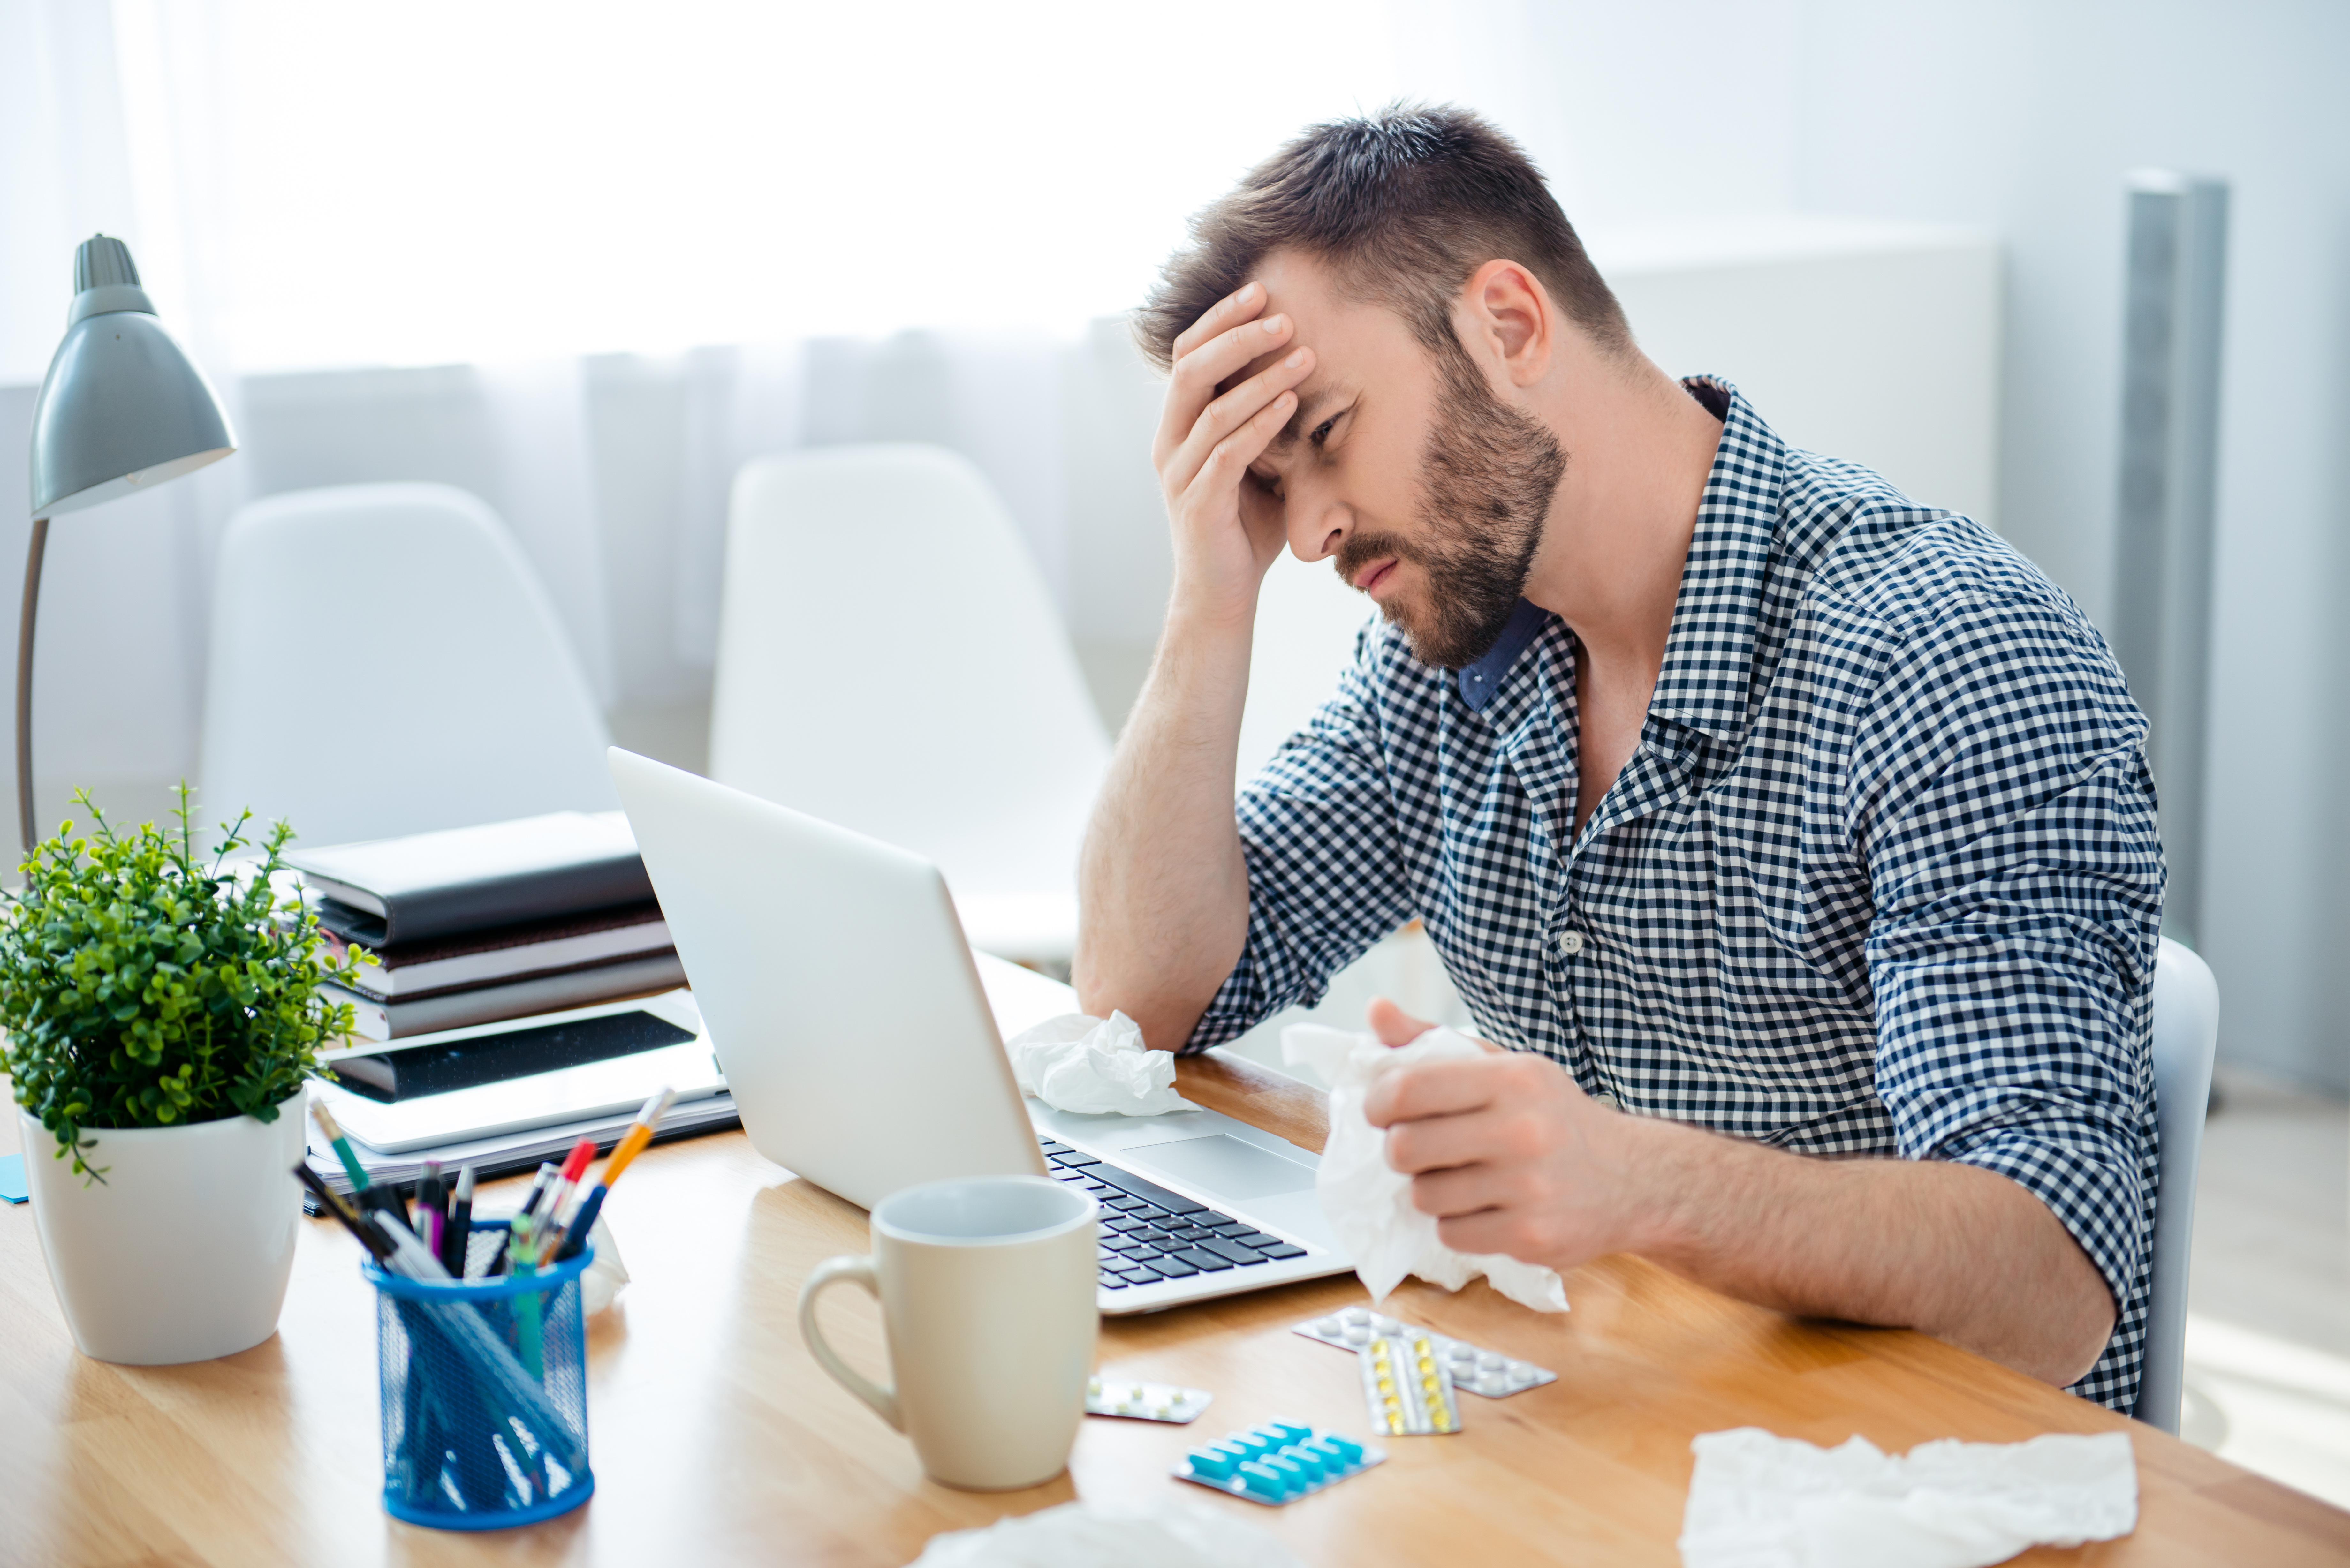 What is the most common cause of frustration in the workplace?